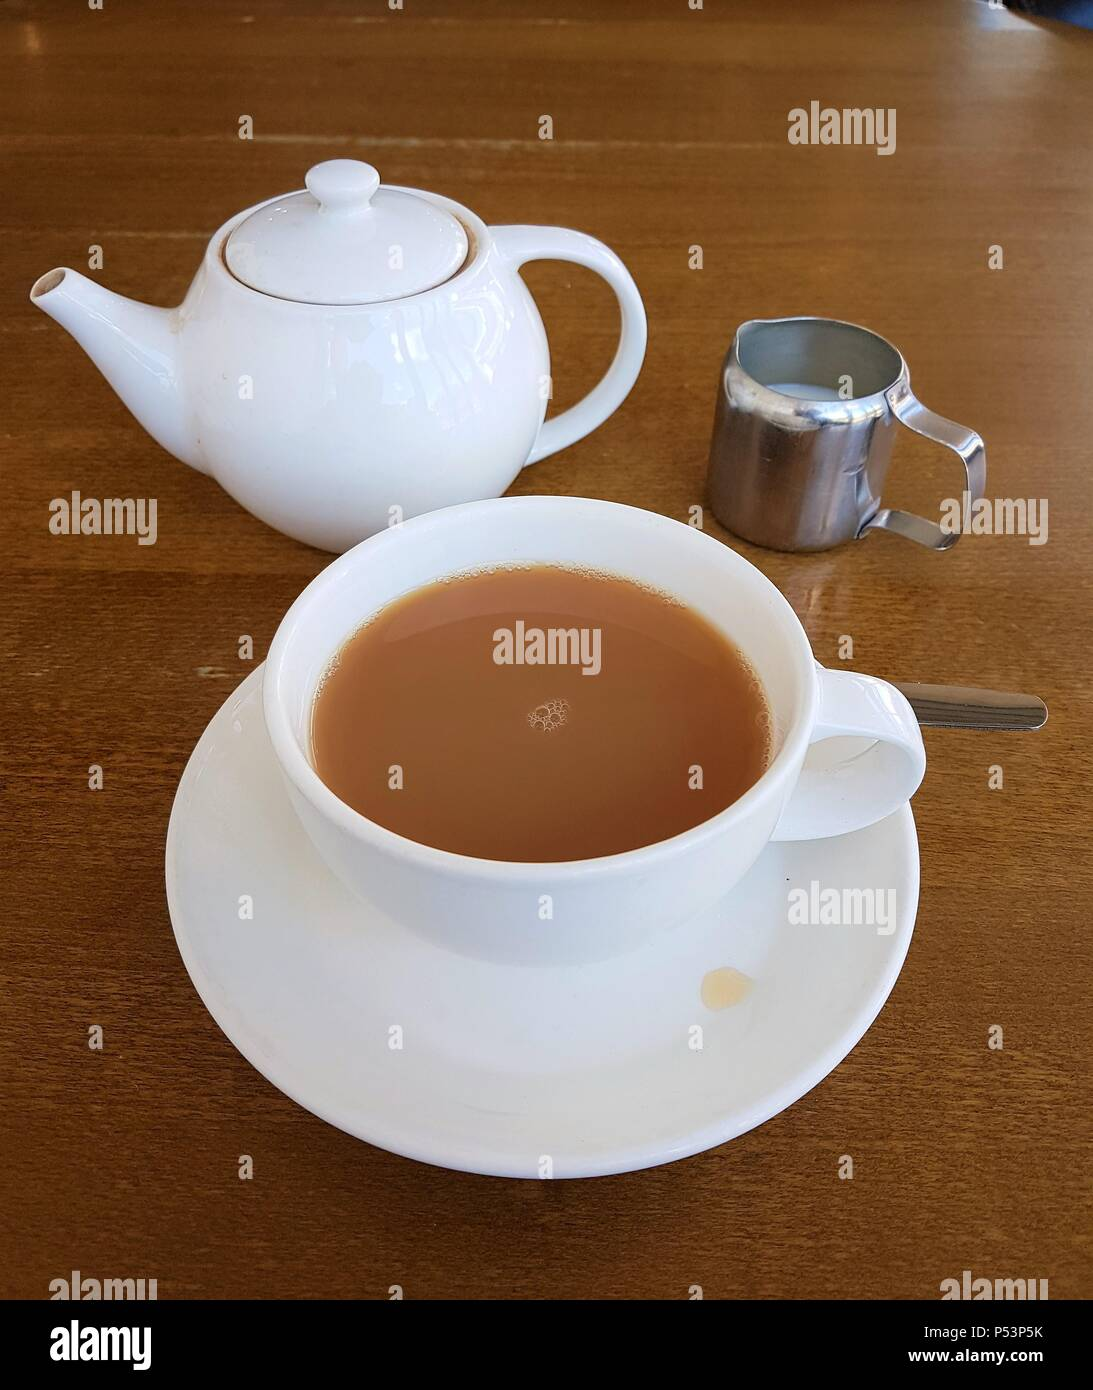 Tea cup filled with tea on saucer with tea pot and milk on a table - Stock Image